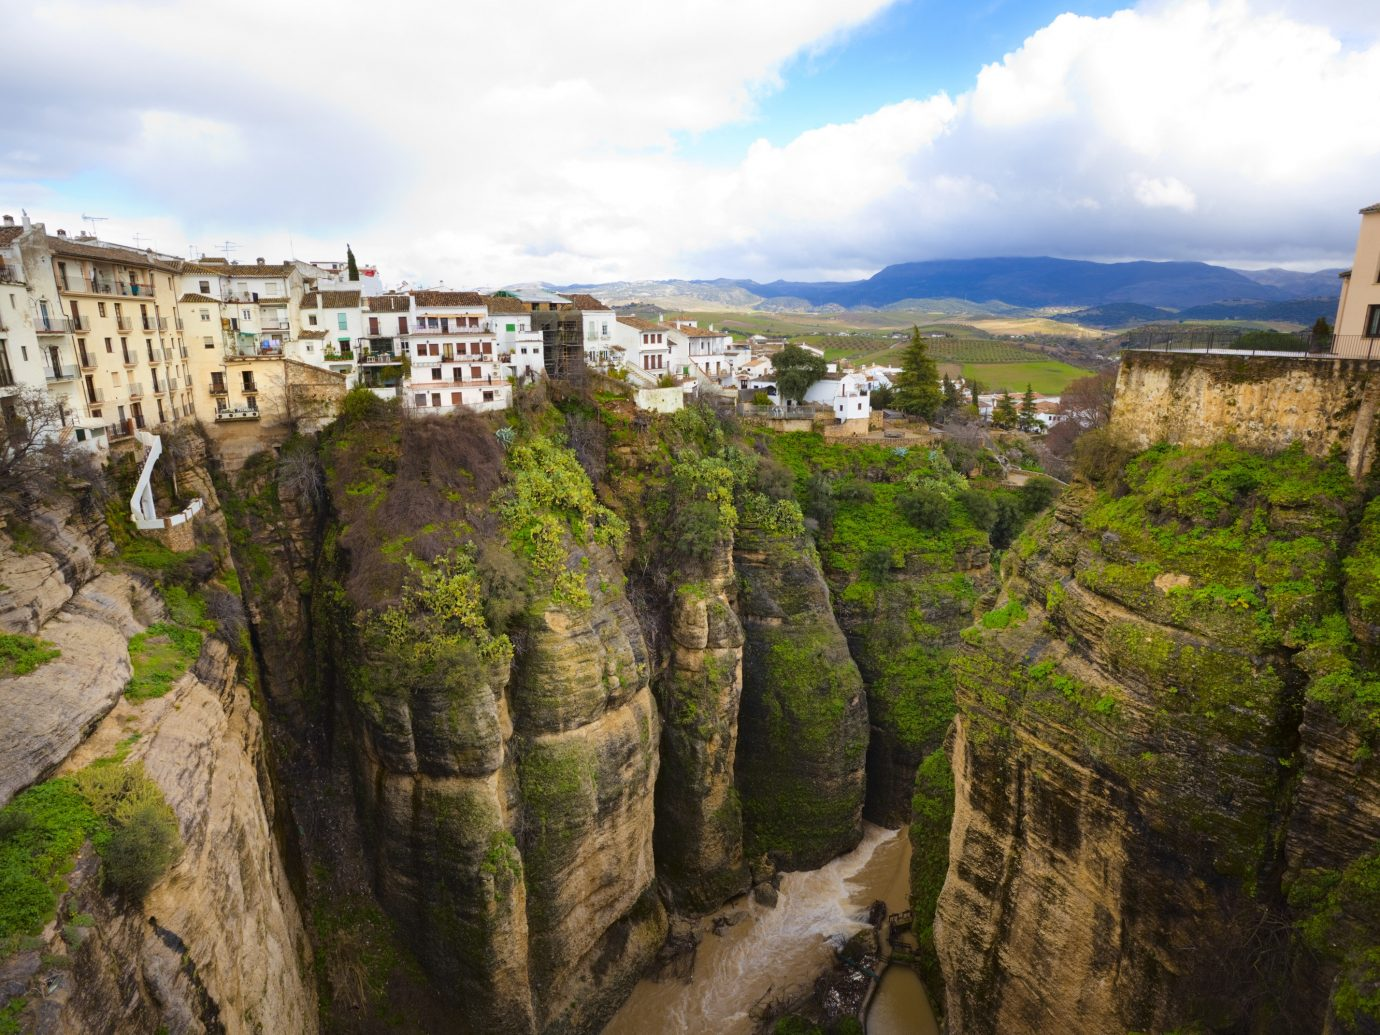 europe Spain Trip Ideas sky historic site hill station escarpment terrain mountain Village tree tourist attraction City cliff national trust for places of historic interest or natural beauty rock mount scenery tourism landscape watercourse national park panorama